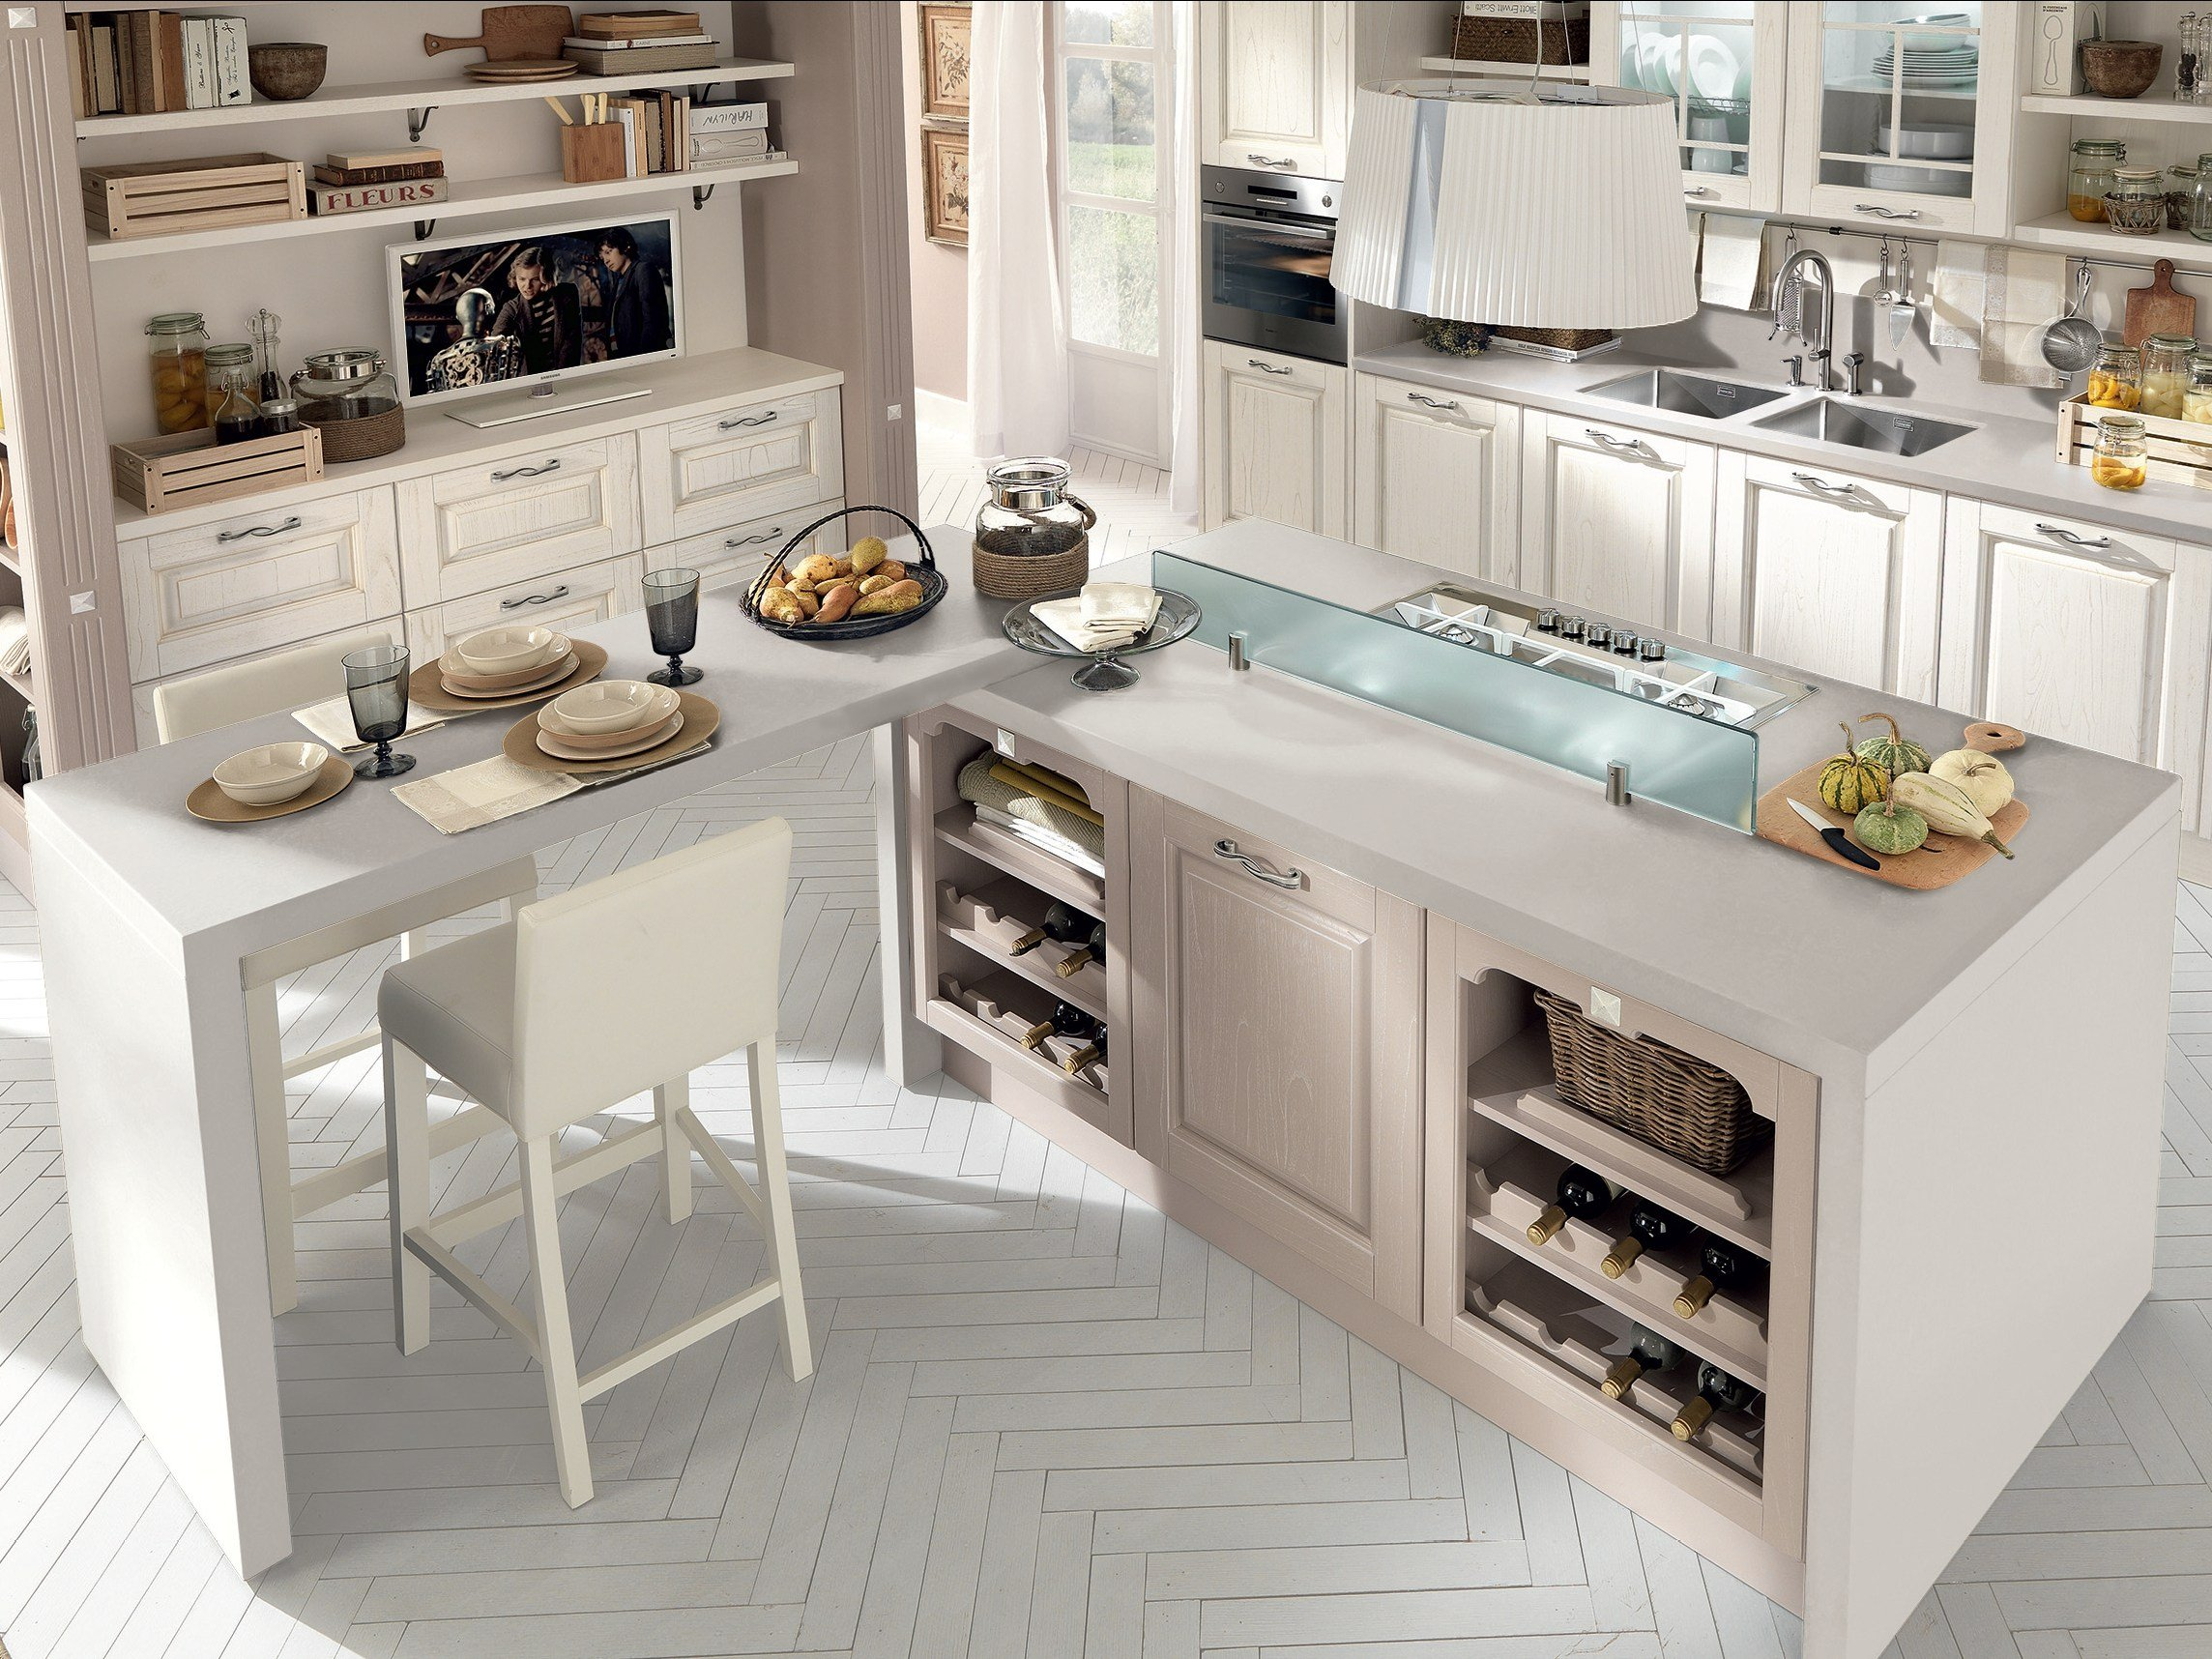 Awesome tavoli cucina lube pictures home interior ideas - Cucina pamela lube ...